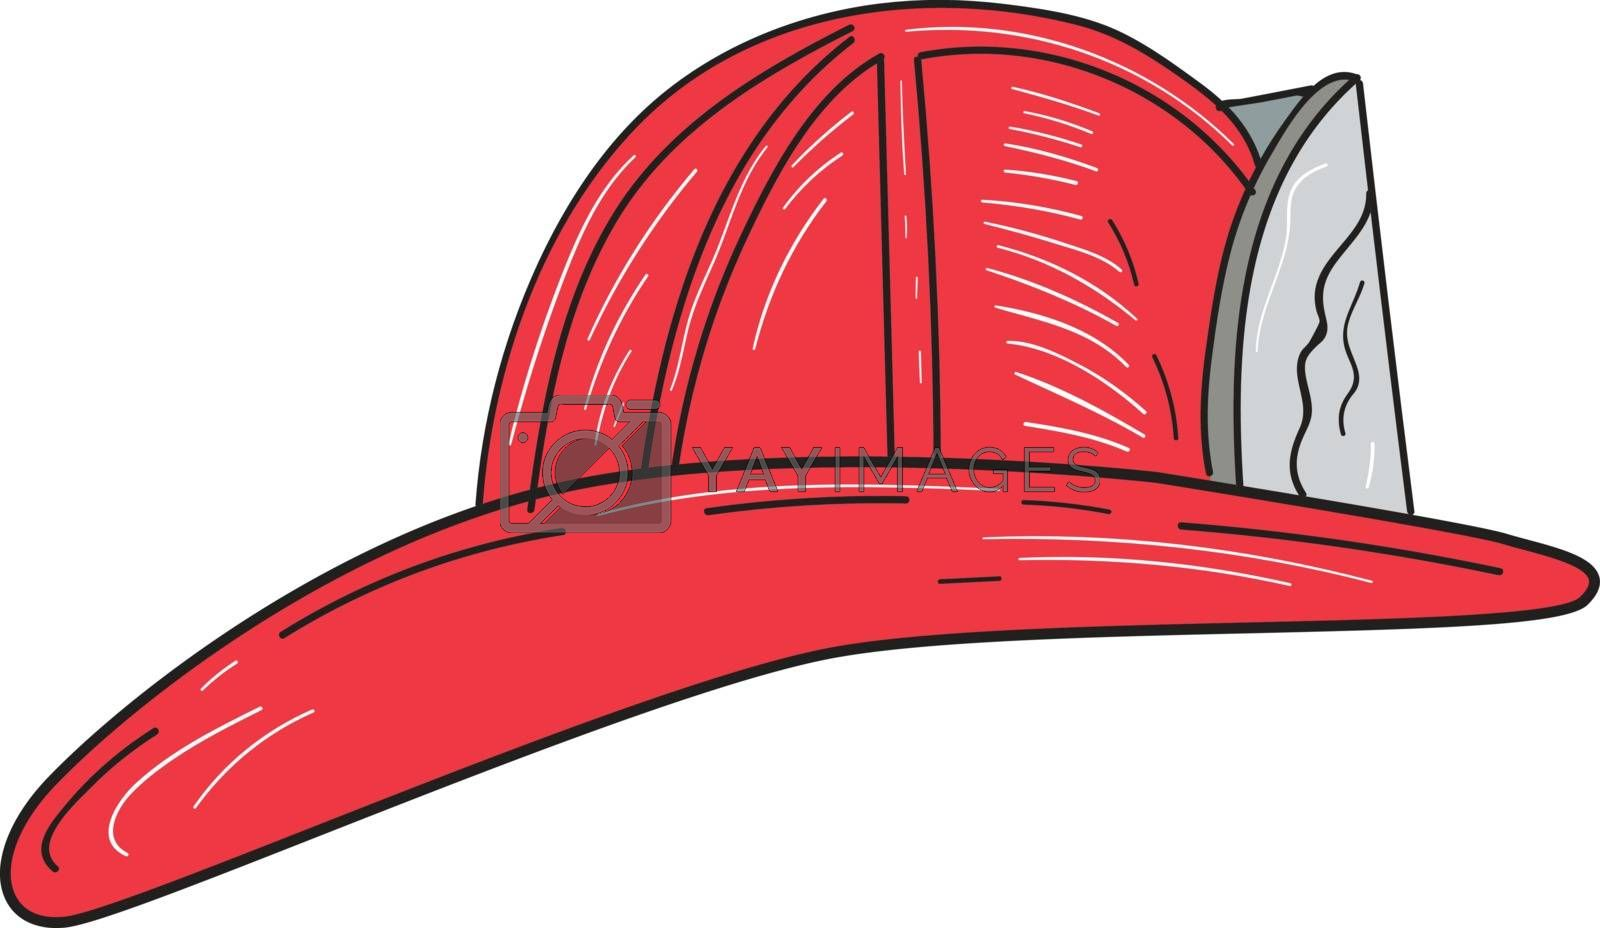 Drawing sketch style of a vintage fireman fire fighter helmet viewed from the side set on isolated white background.